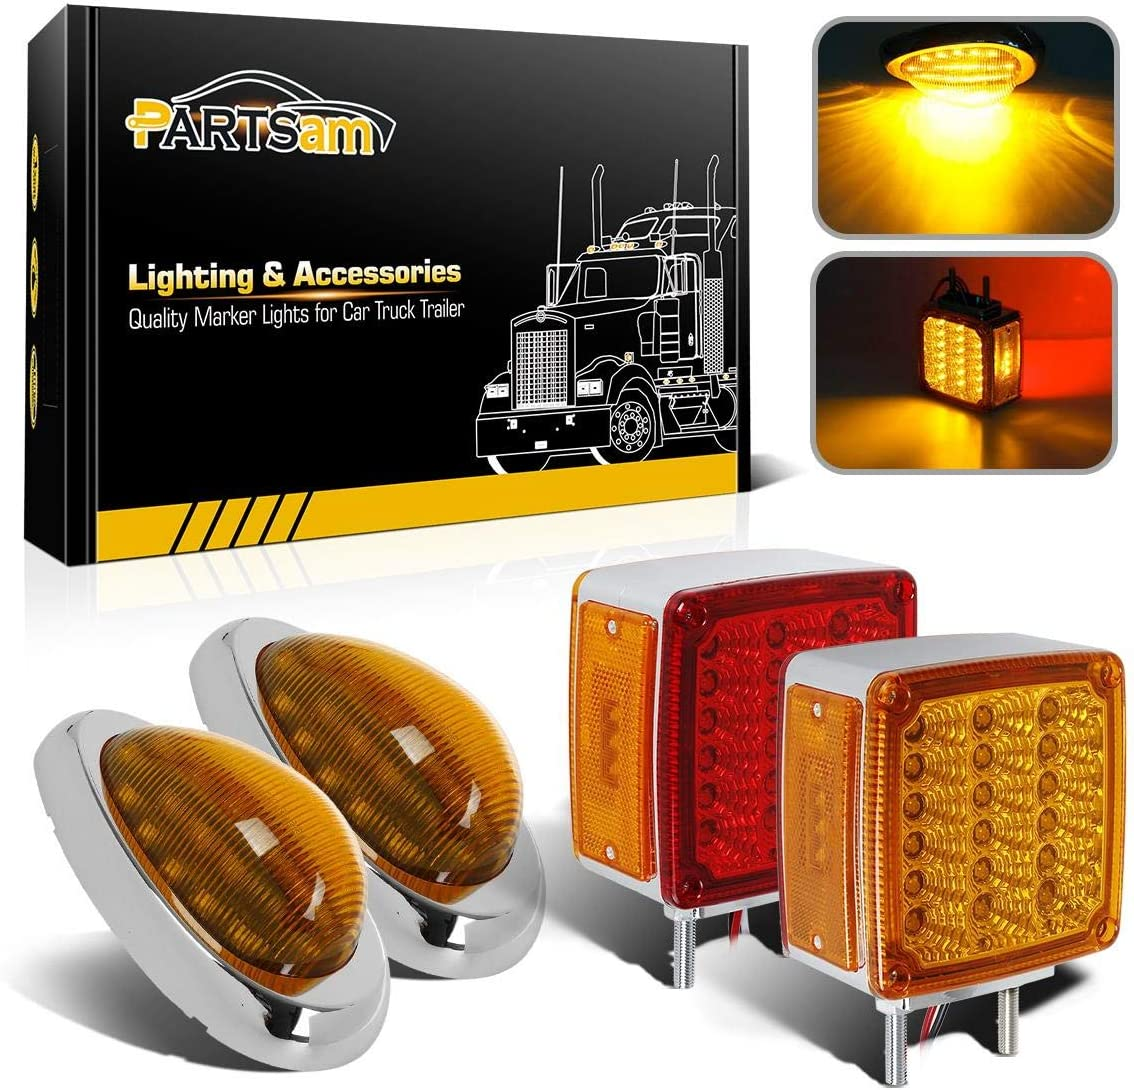 Led Truck Trailer Lights Kit 2Pcs Double Face Square Led Pedestal Fender Light 39 LED 2Pcs 6 Amber Sleeper Cab LED Side Marker//Turn Light 15 LED Replacement for Freightliner Century//Columbia